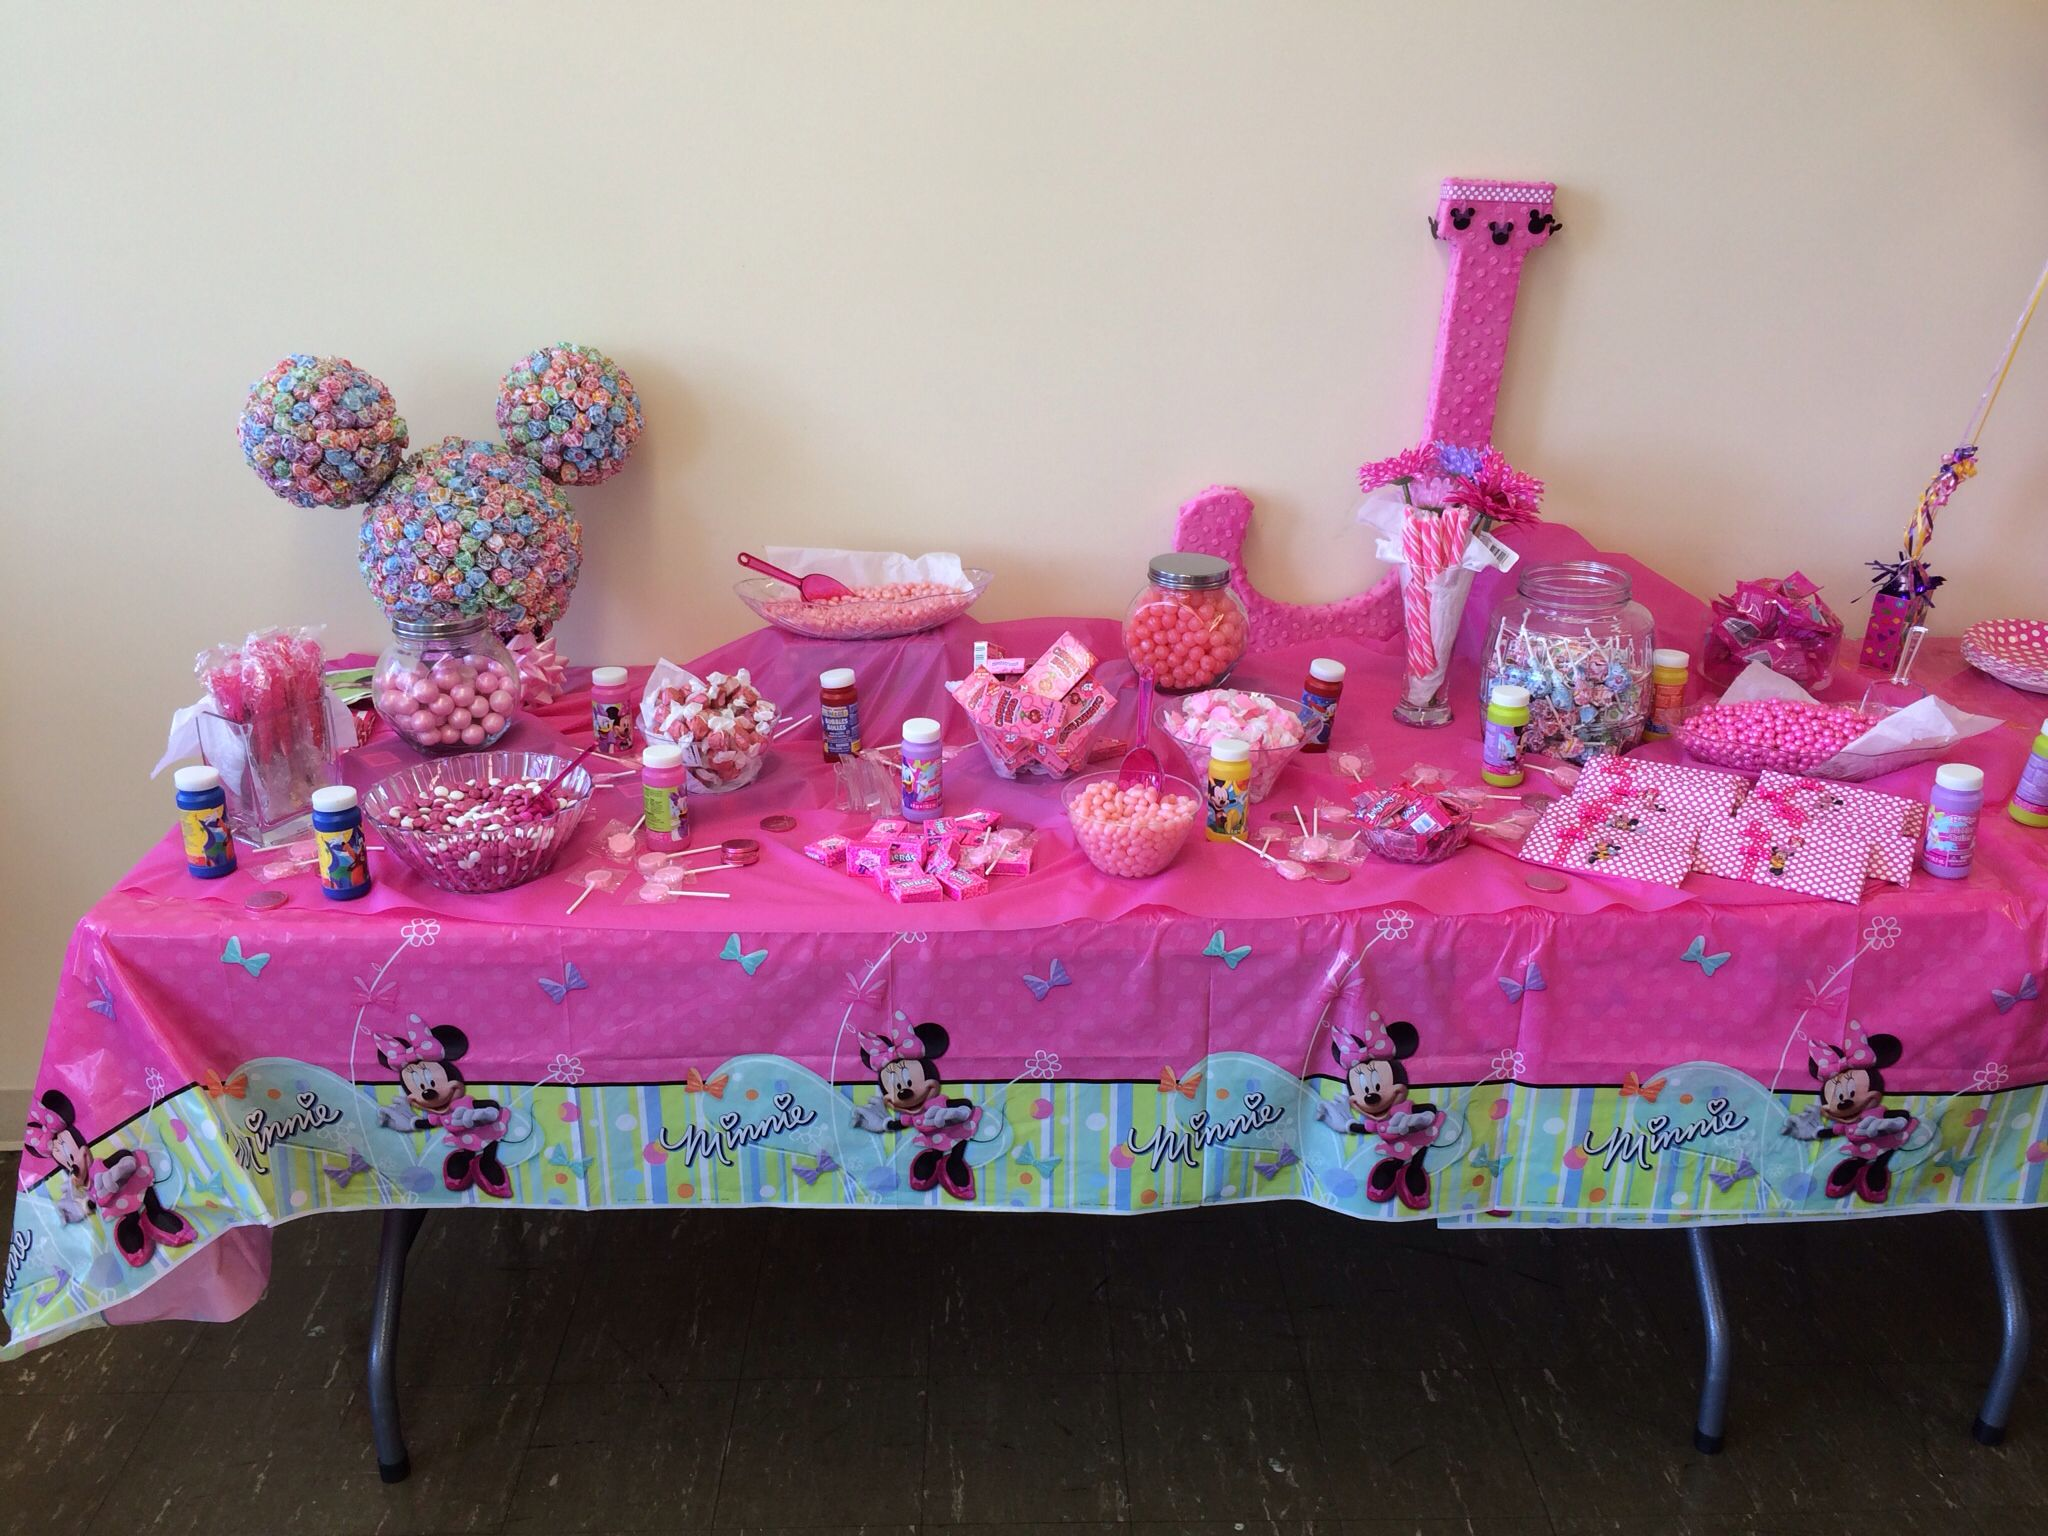 Jordyns candy bar for her Minnie Mouse Birthday party.